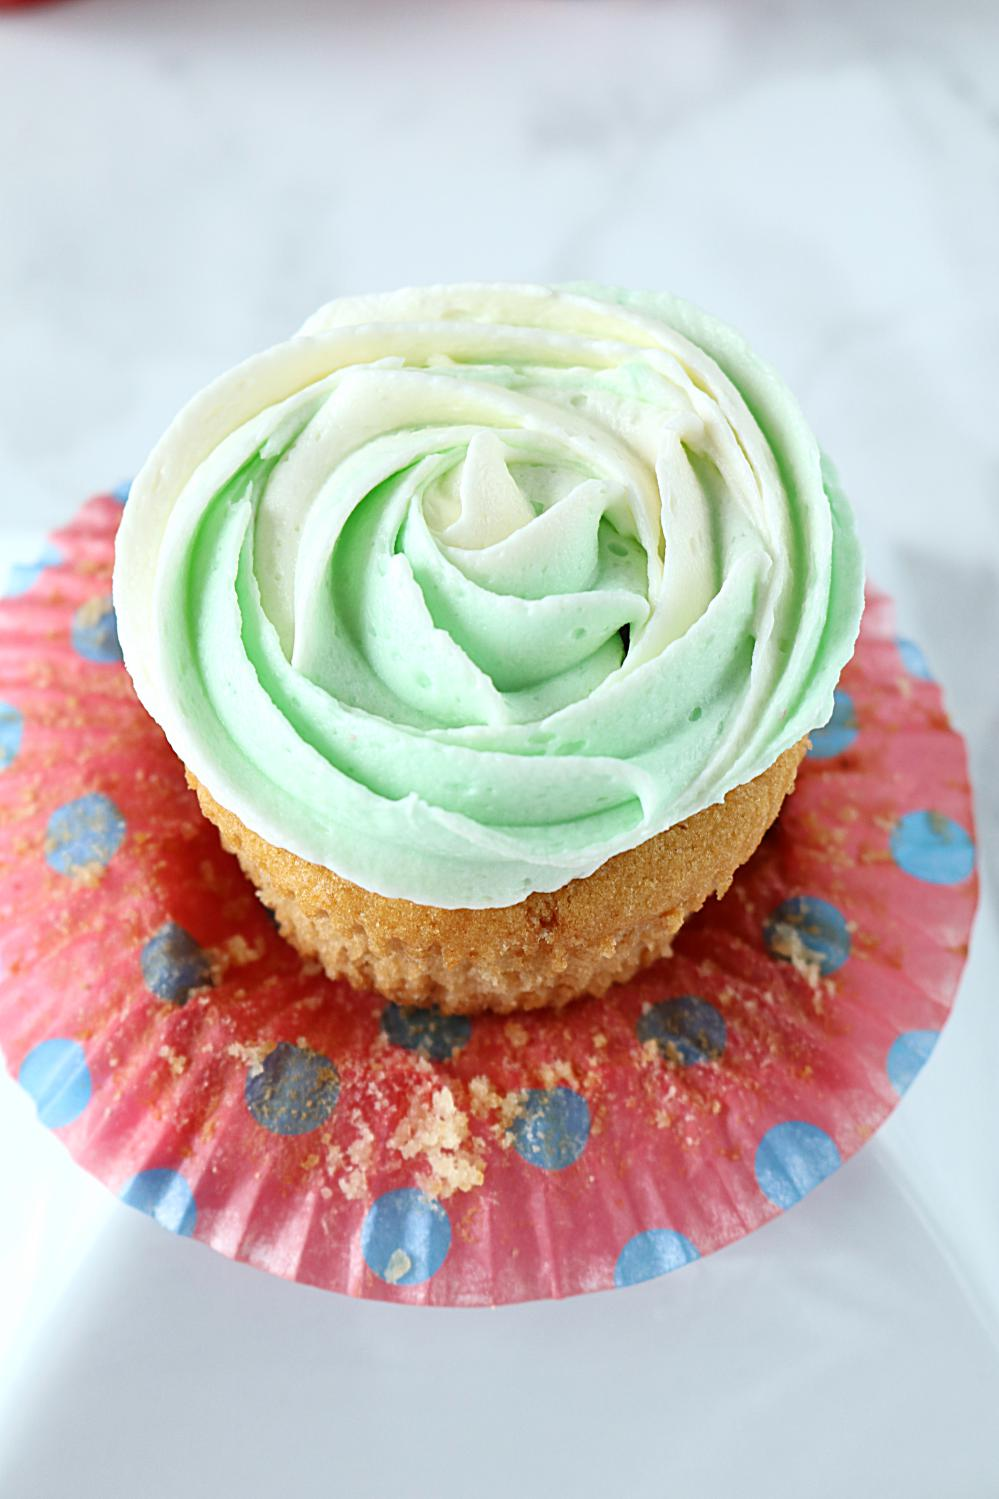 Can Any Cake Recipe Be Used For Cupcakes